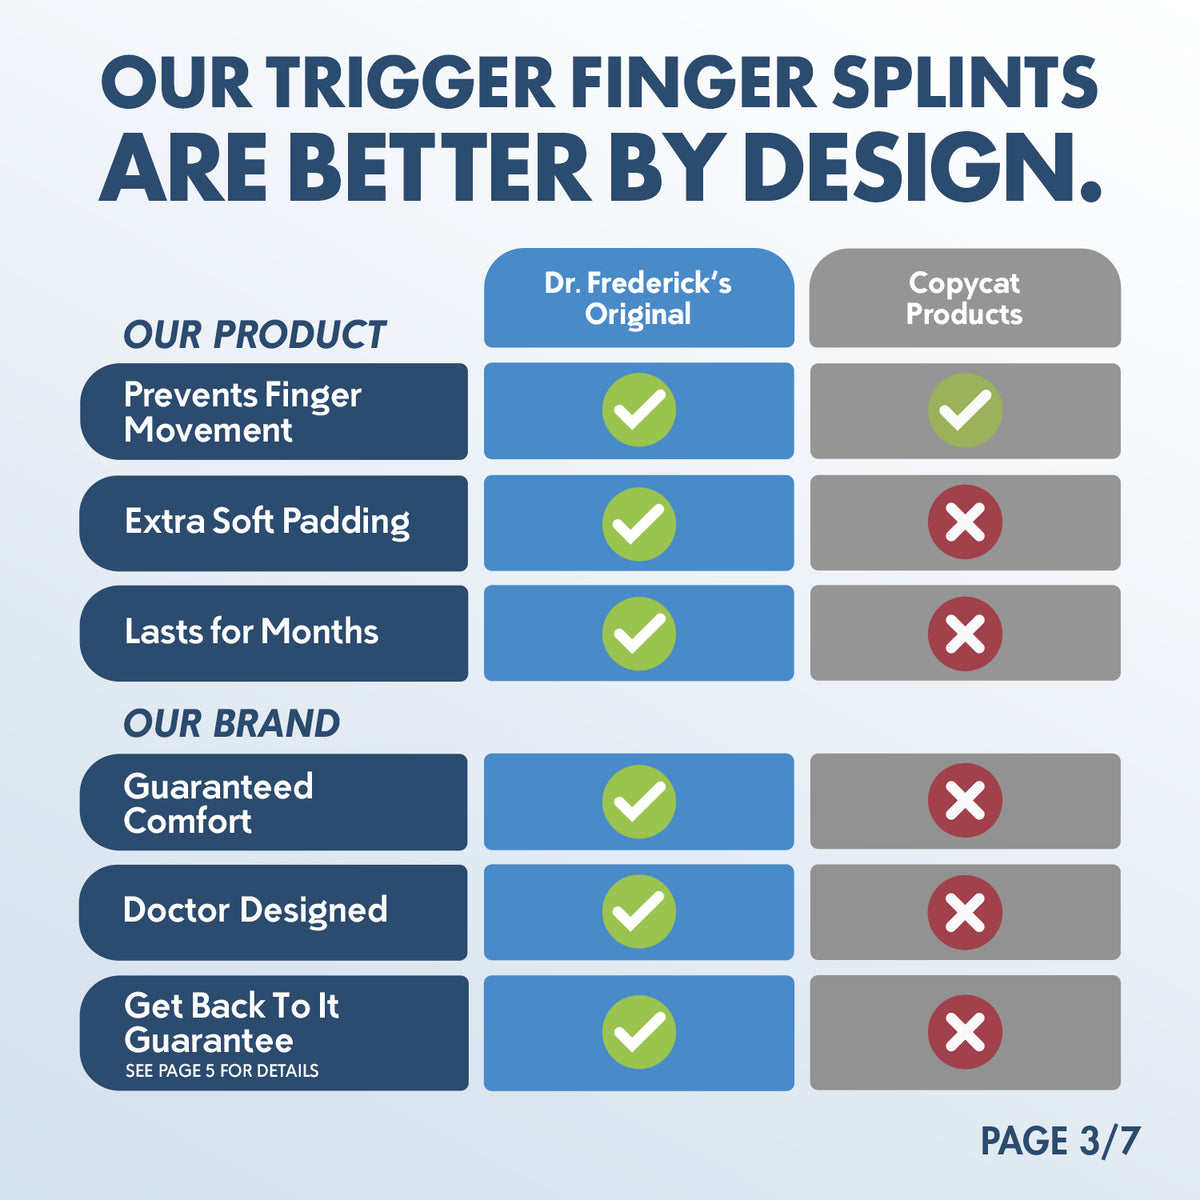 Dr. Frederick's Original Trigger Finger Splint - 2 Pieces - Doctor-Developed Design Fits Index Finger - Middle Finger - Ring Finger Trigger Finger Dr. Frederick's Original